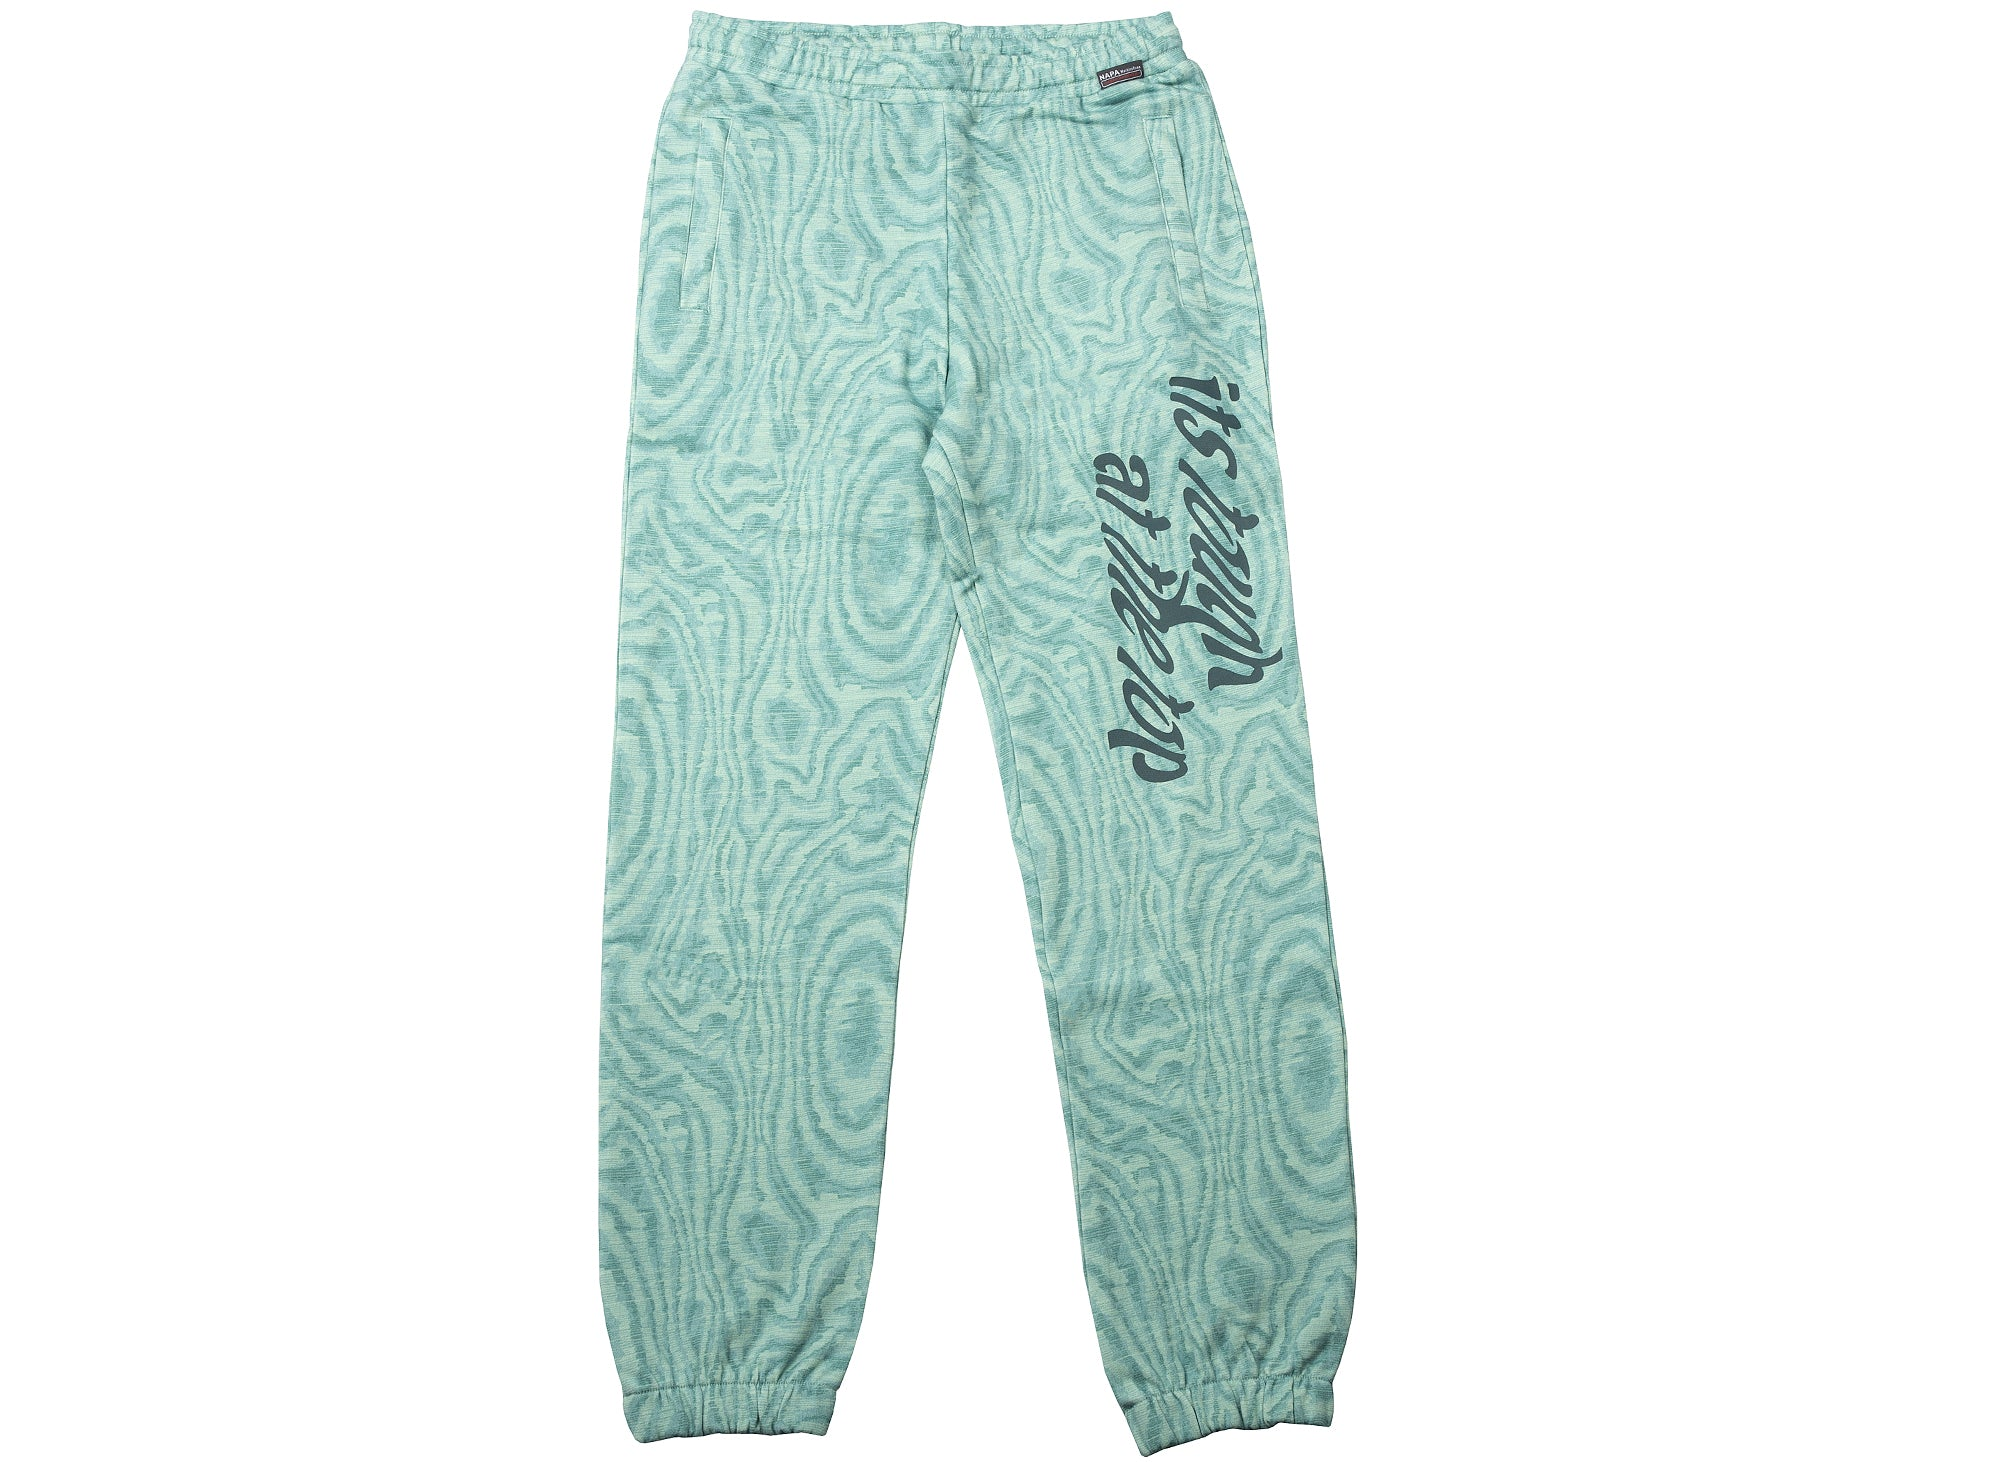 Napa by Martine Rose M-Luney Pants